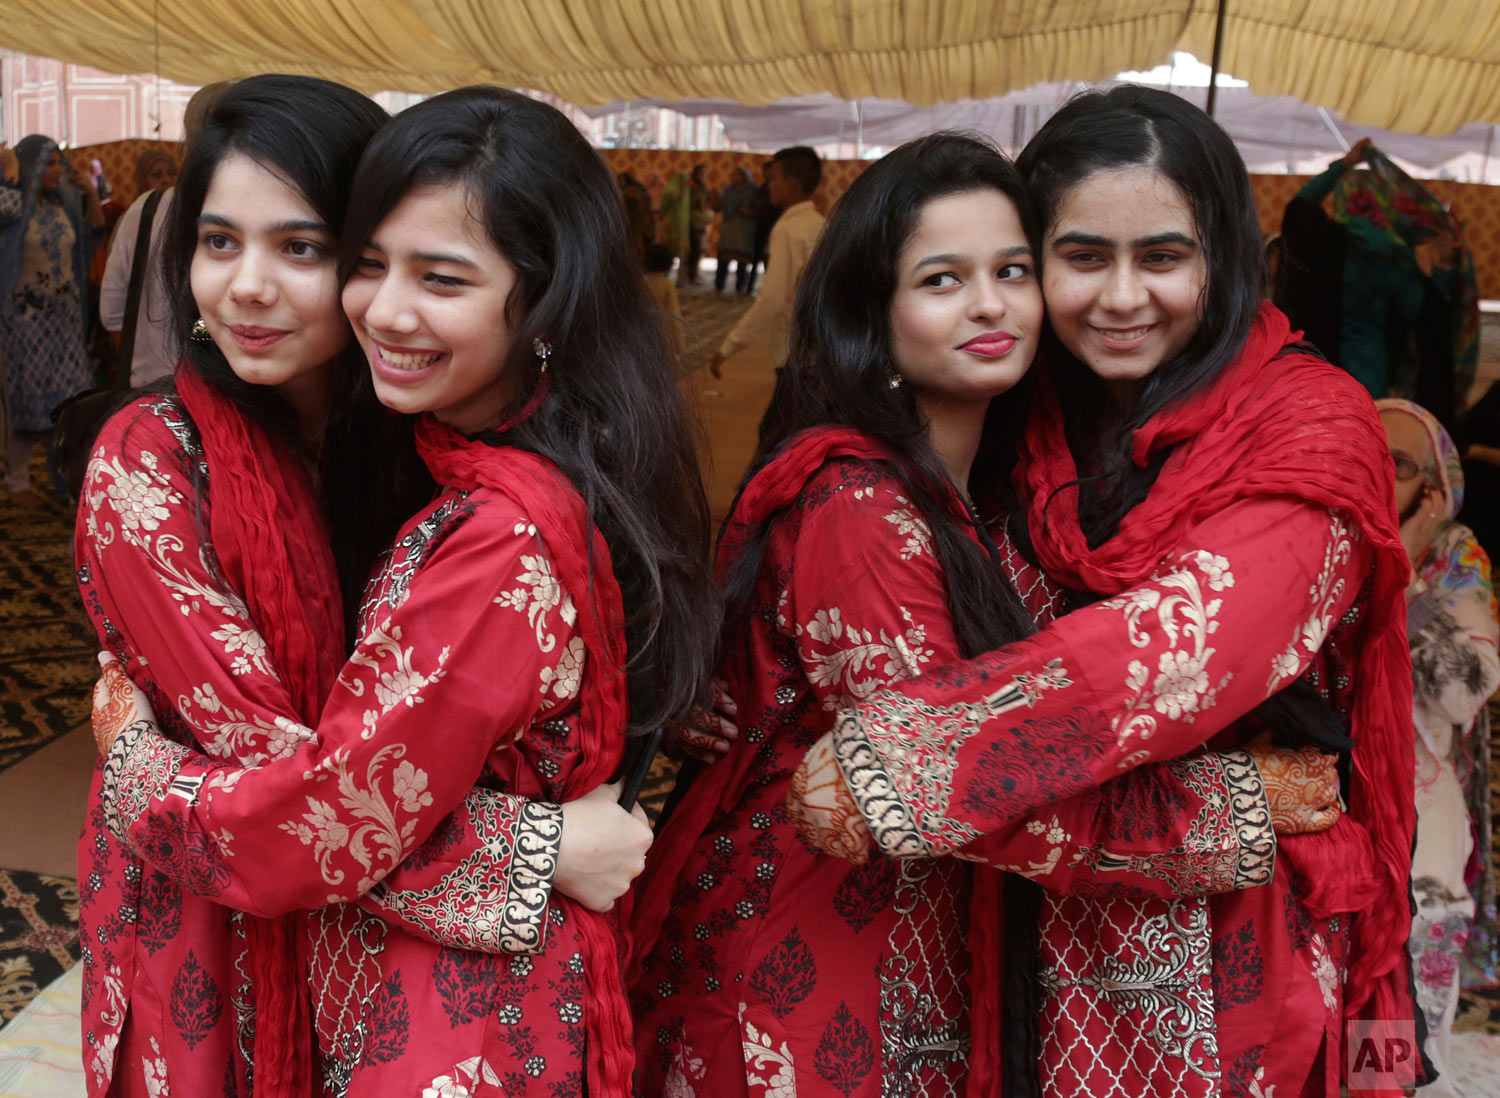 Youths in festive dresses greet each other on the occasion of the Eid al-Adha prayers, in Lahore Pakistan, Wednesday, Aug. 22, 2018. Muslims around the world celebrate Eid al-Adha, or the Feast of the Sacrifice, that marks the willingness of the Prophet Ibrahim (Abraham to Christians and Jews) to sacrifice his son. (AP Photo/K.M. Chaudary)